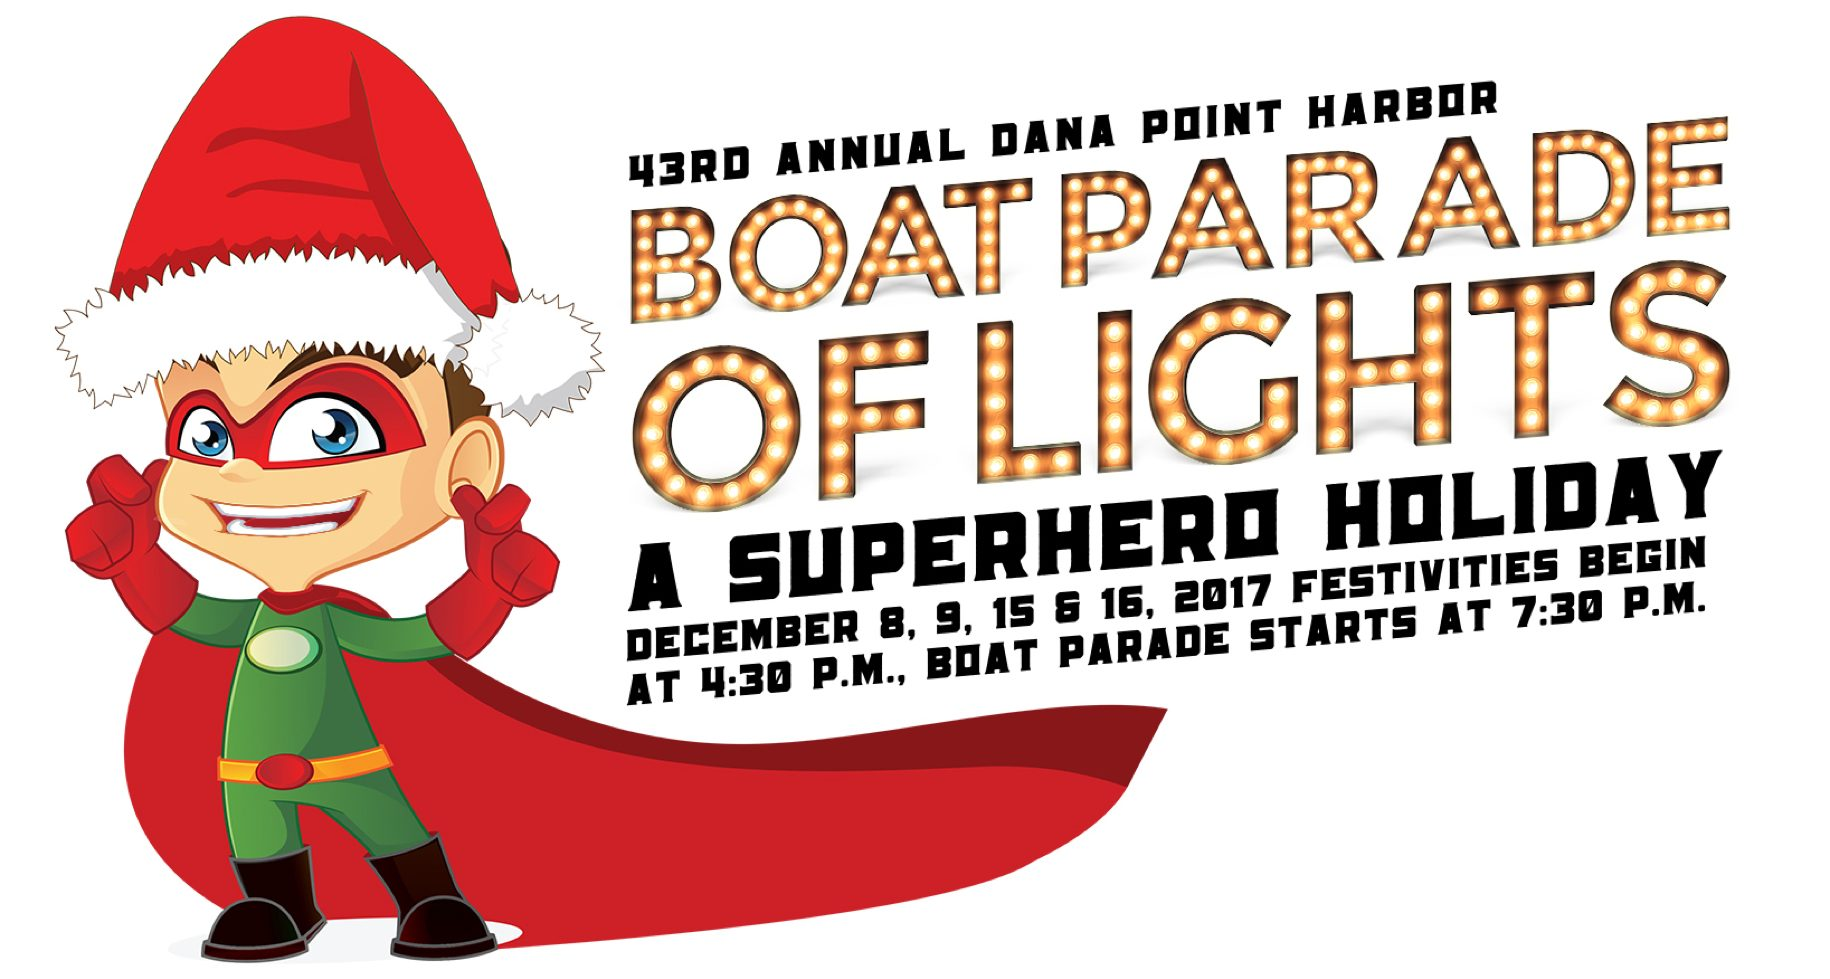 43rd Annual Dana Point Harbor Boat Parade of Lights!